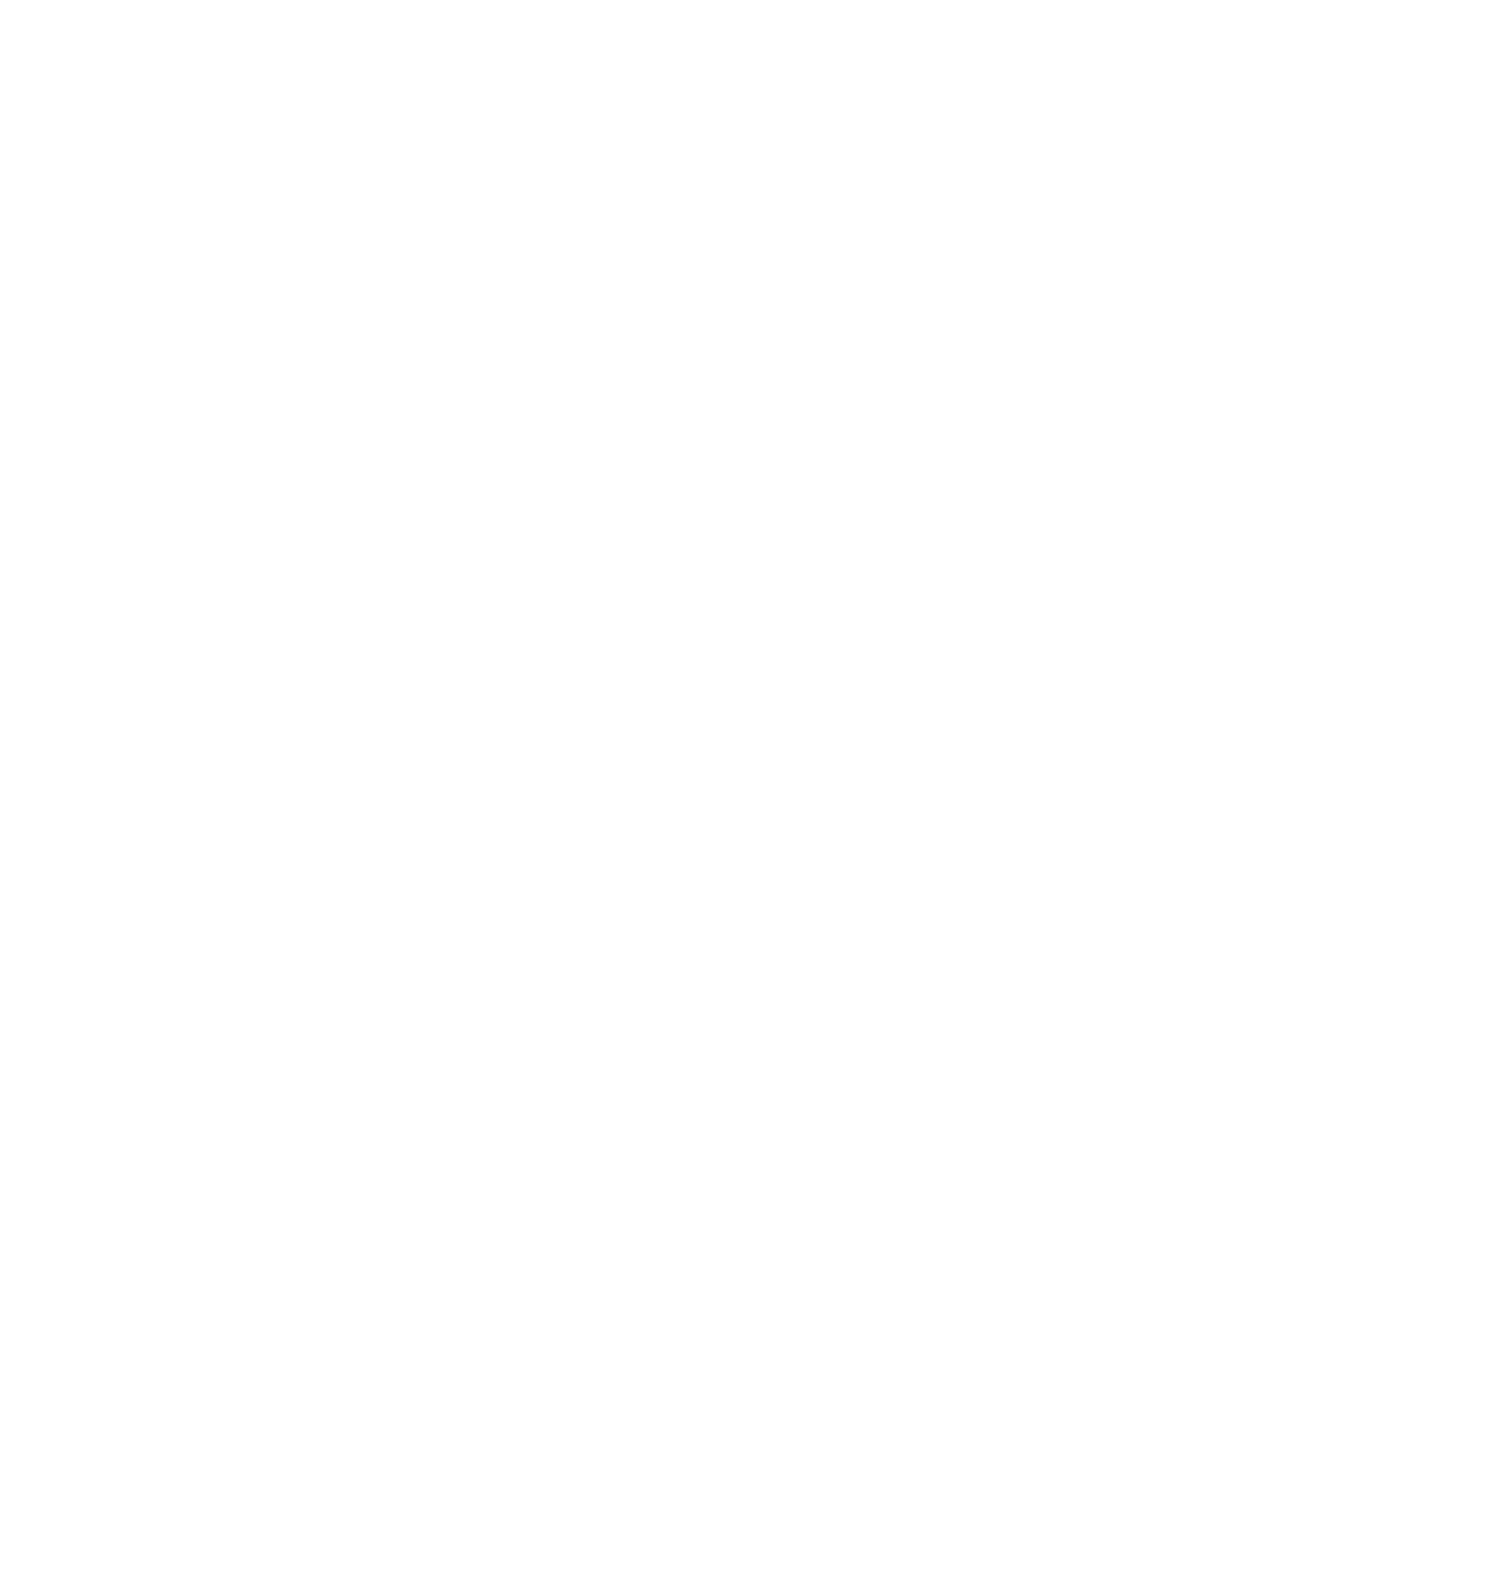 E & J Painting Professionals - Sacramento CA Residential & Commercial Interior & Exterior Painters Contractors